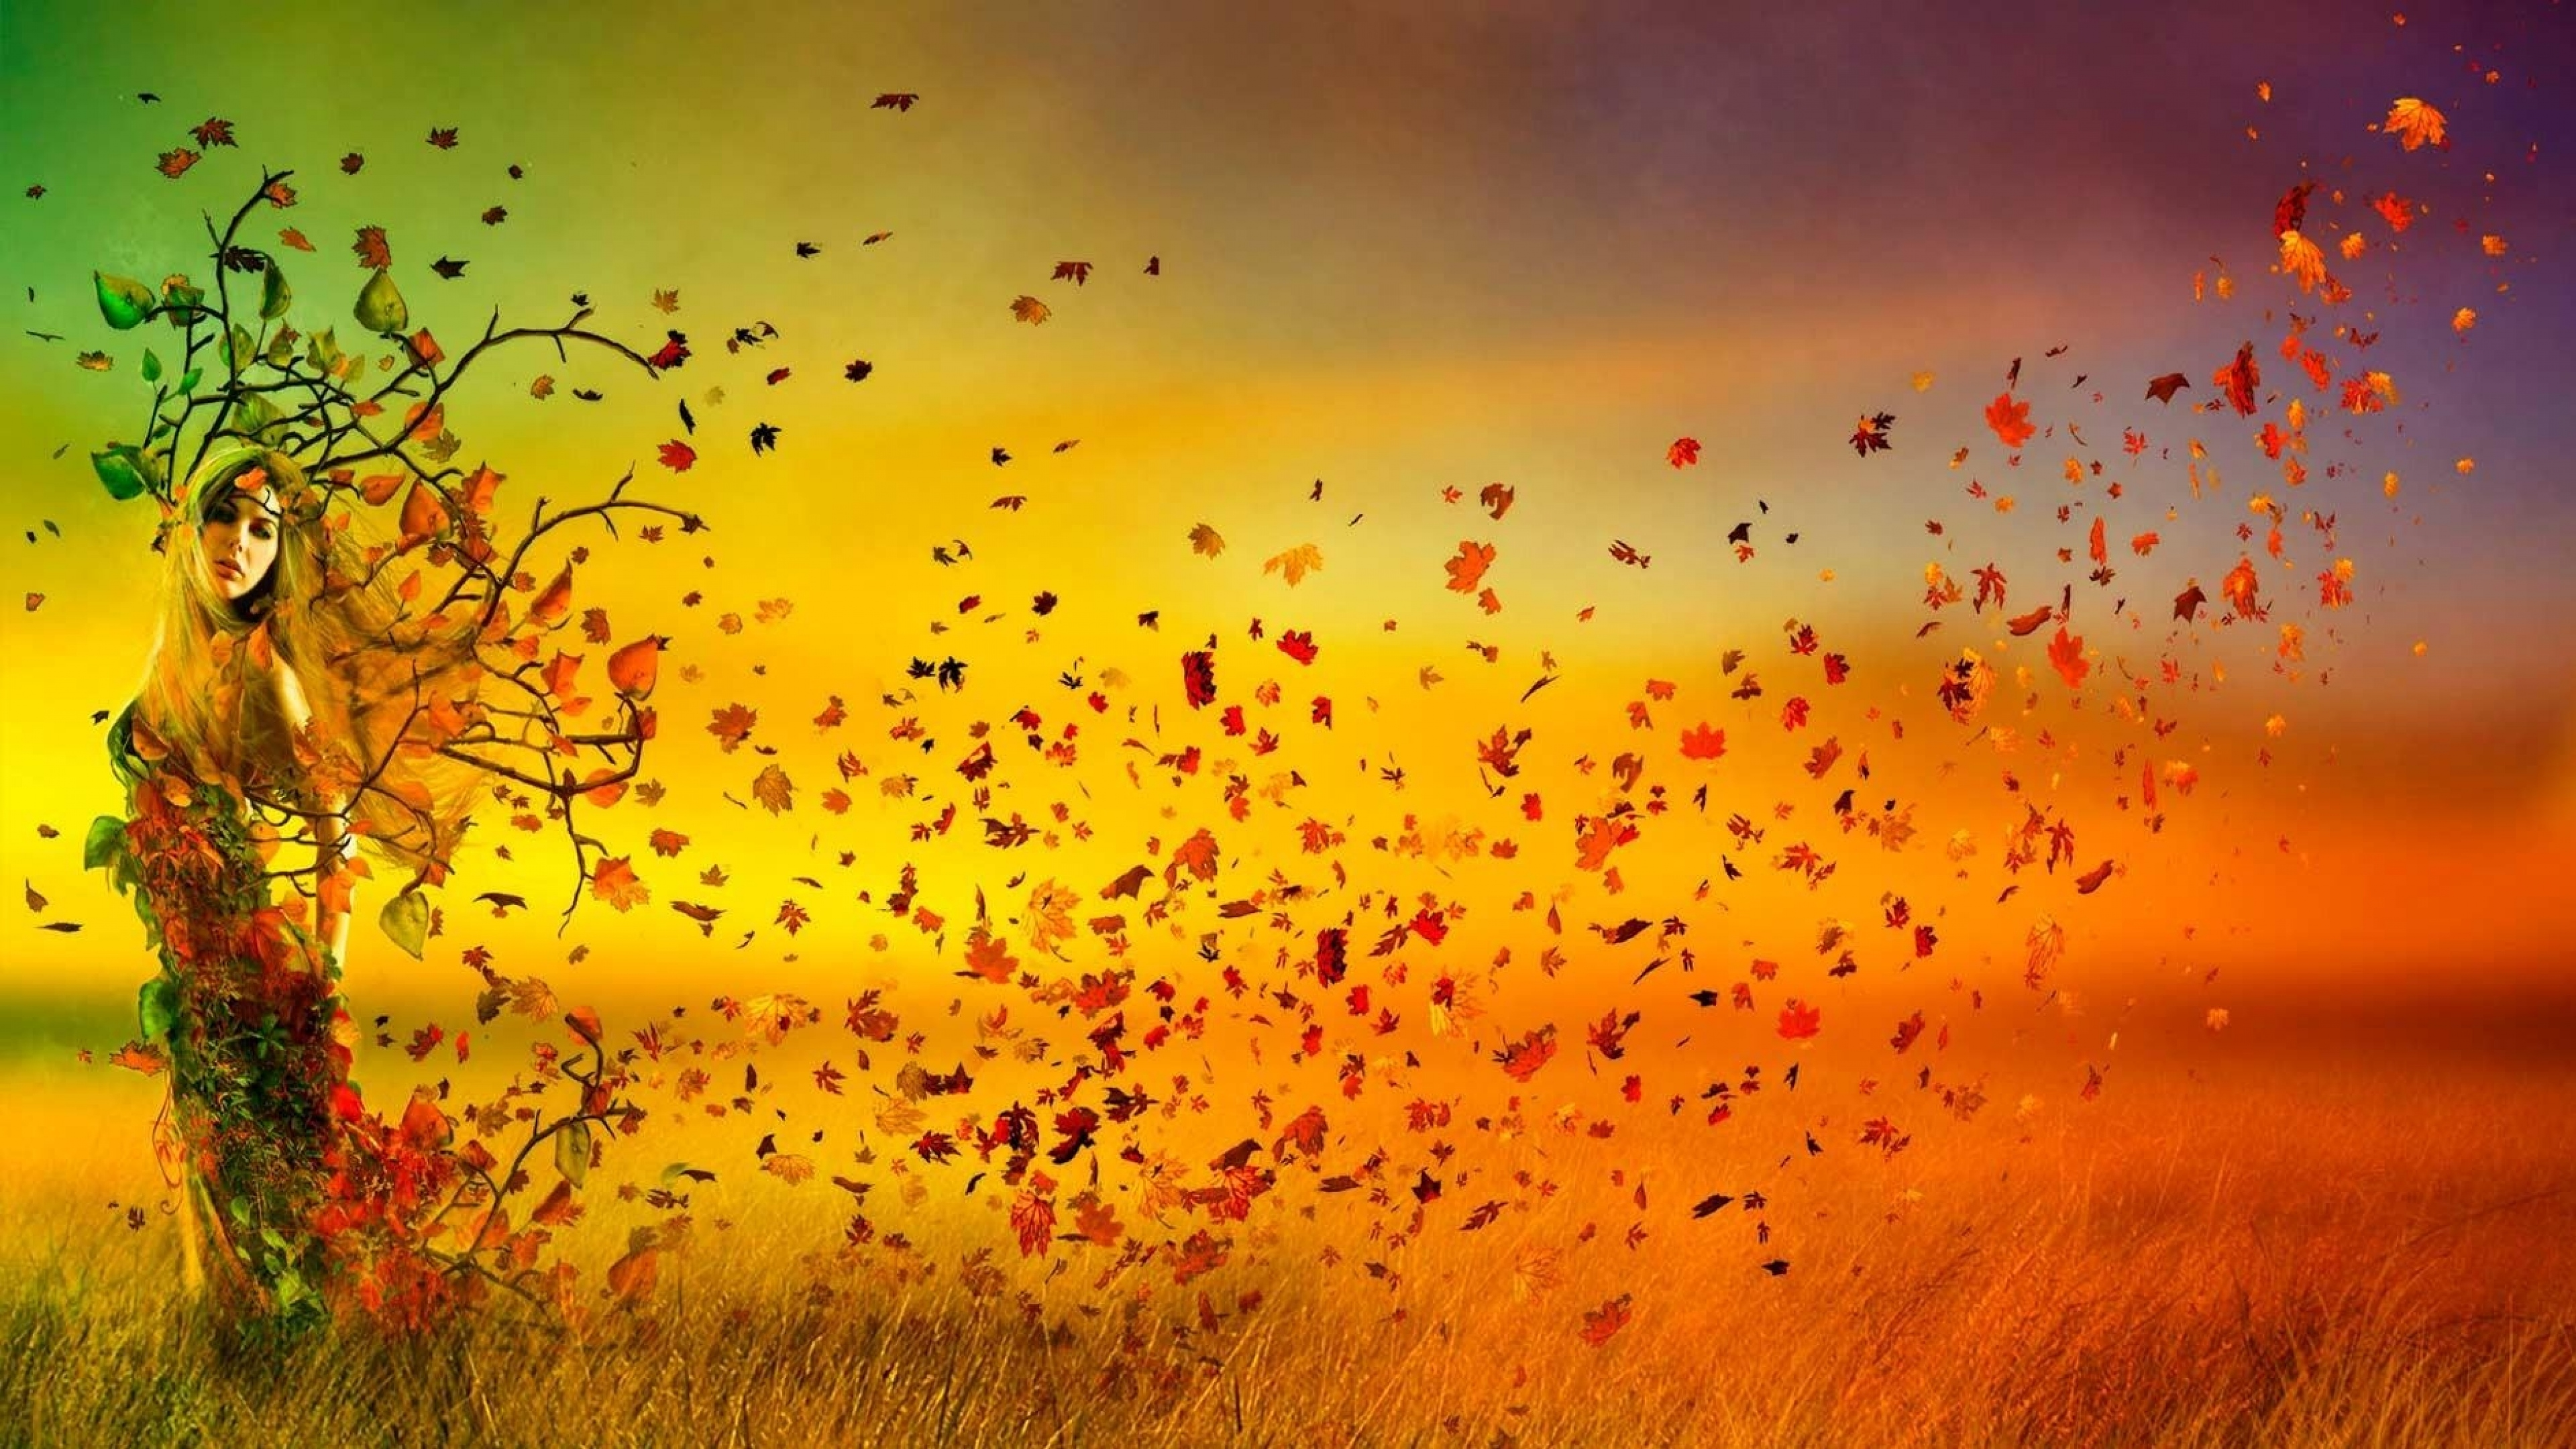 girl_branches_leaves_field_autumn_wind_68835_3840x2160